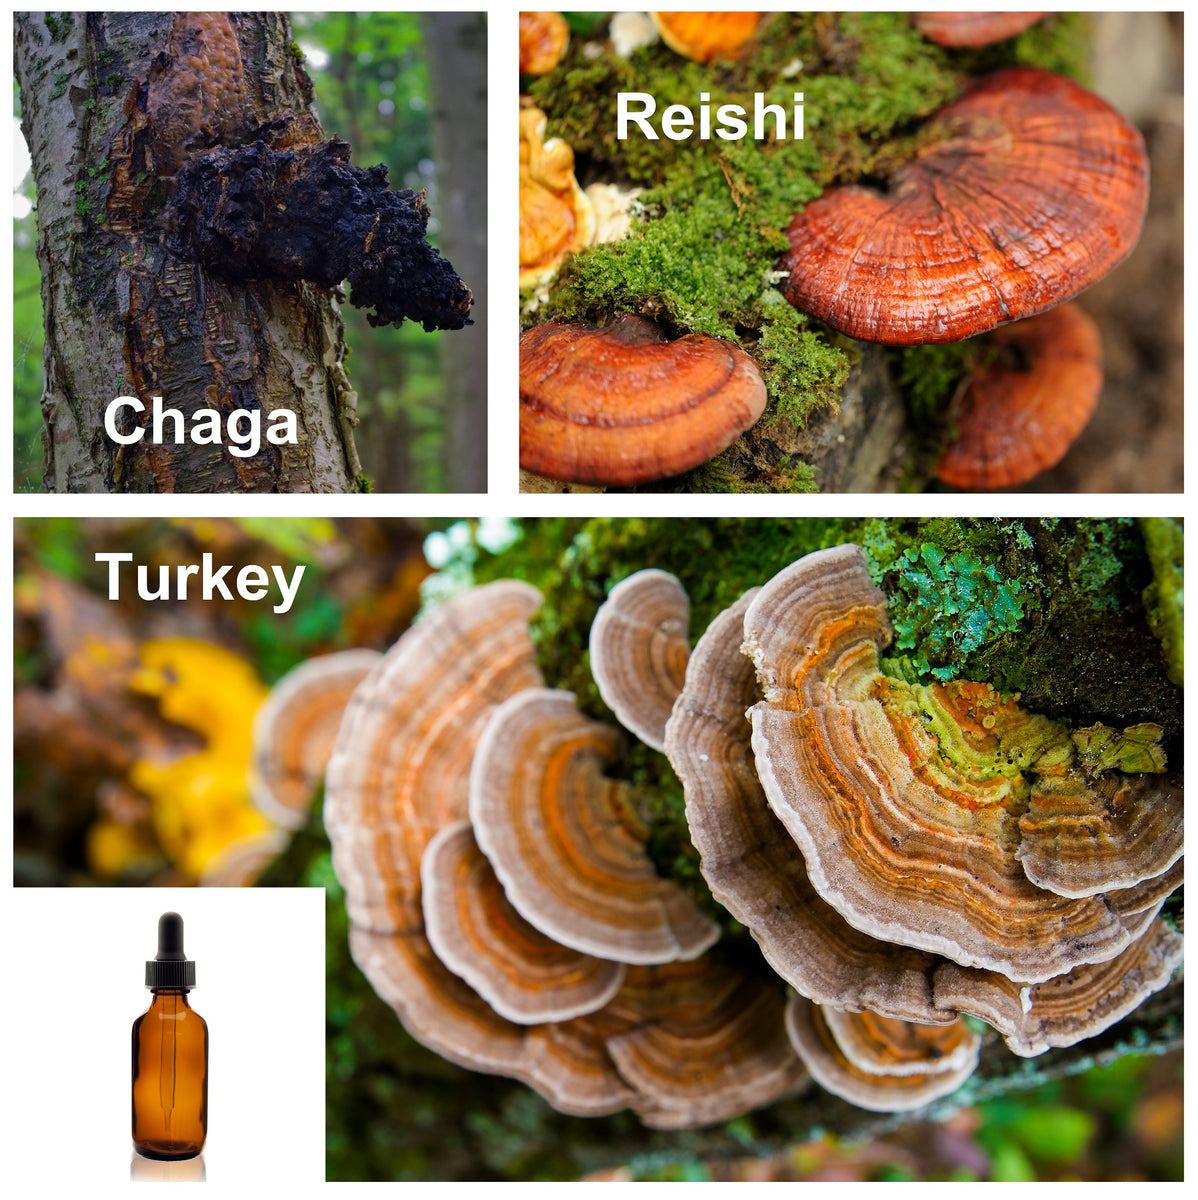 Reishi, Chaga, and Turkey Tail images